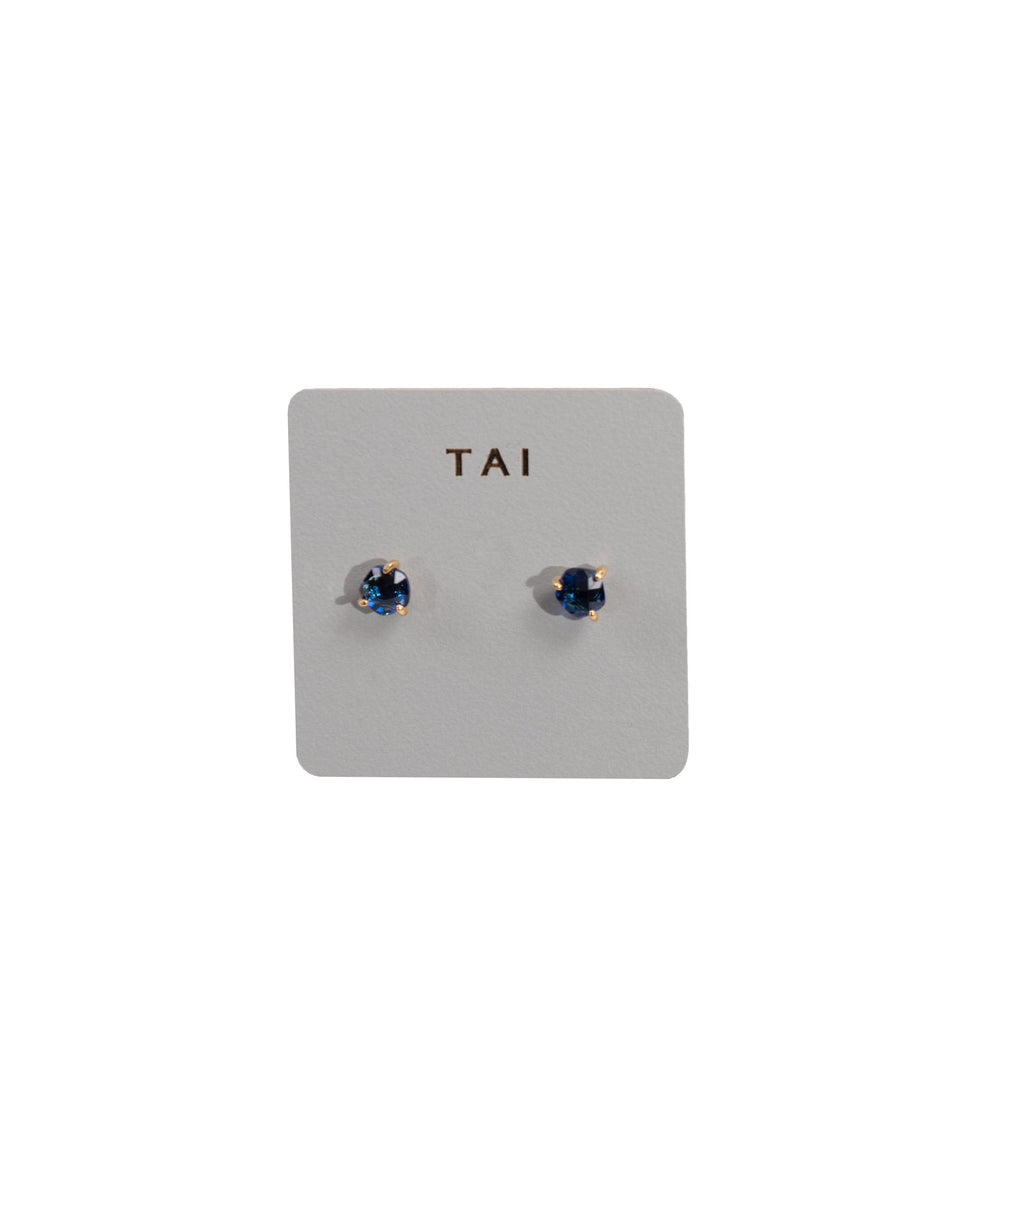 TAI Blue Glass Stud Earrings